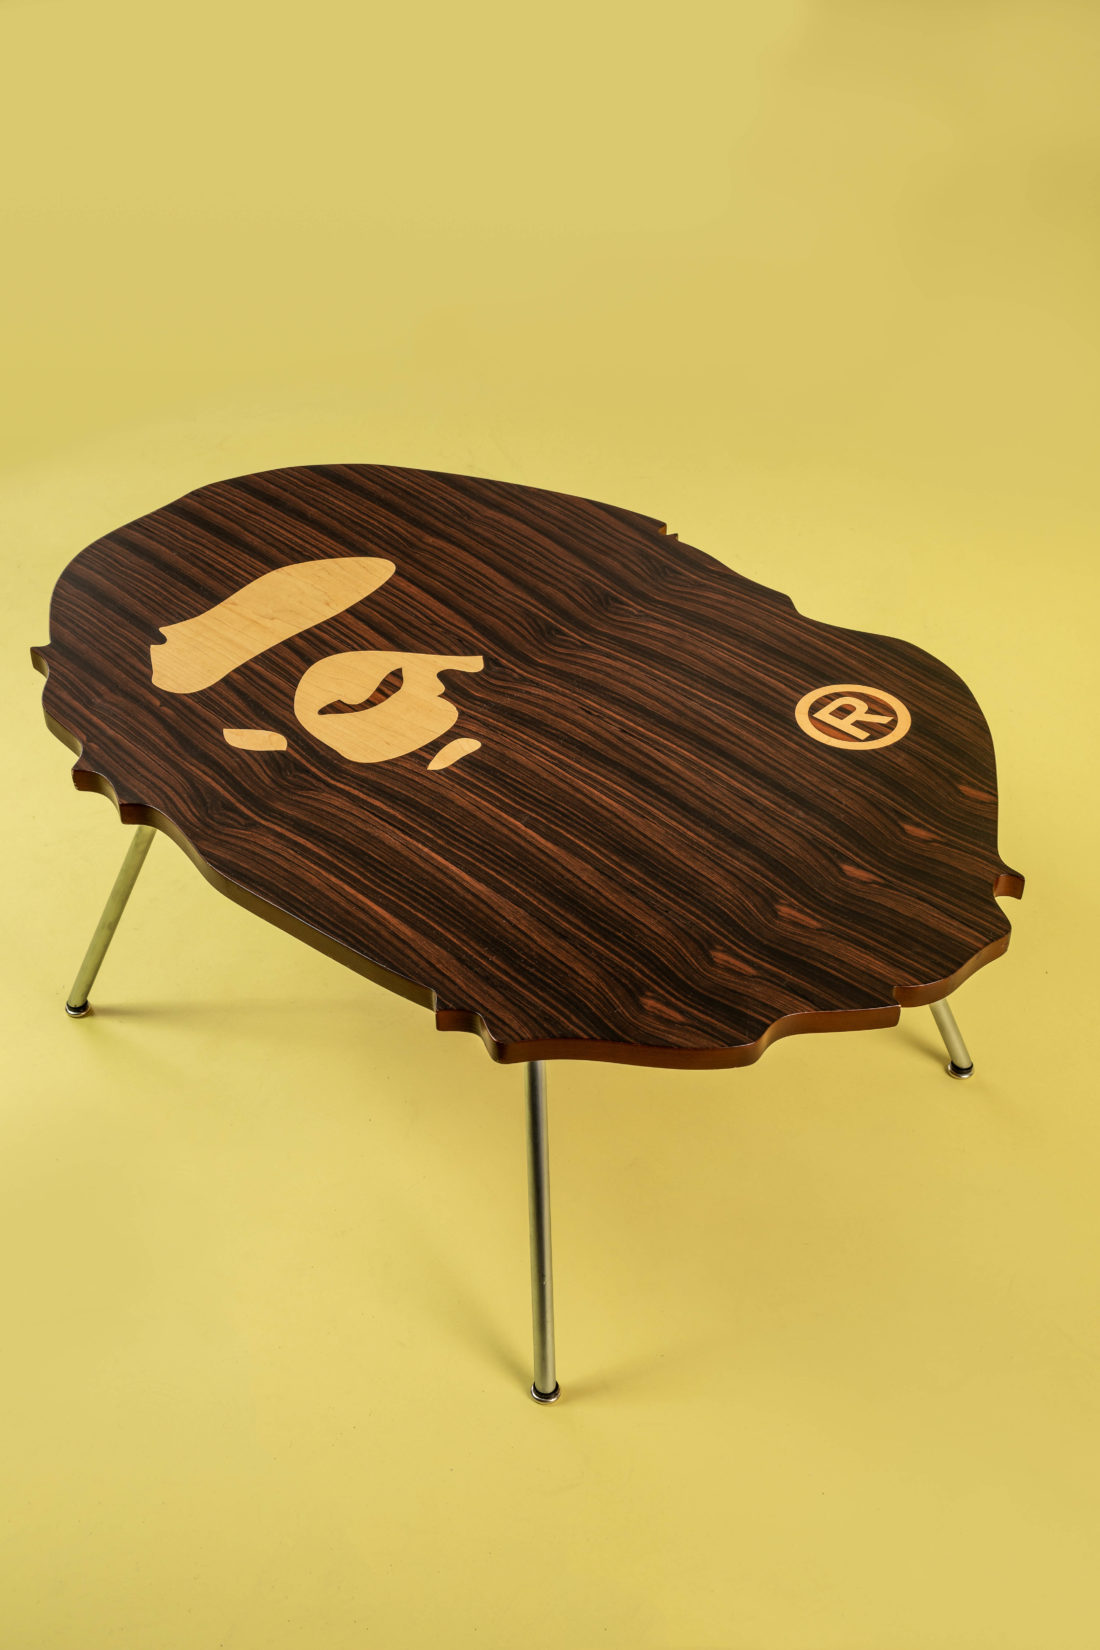 bape modernica coffee table